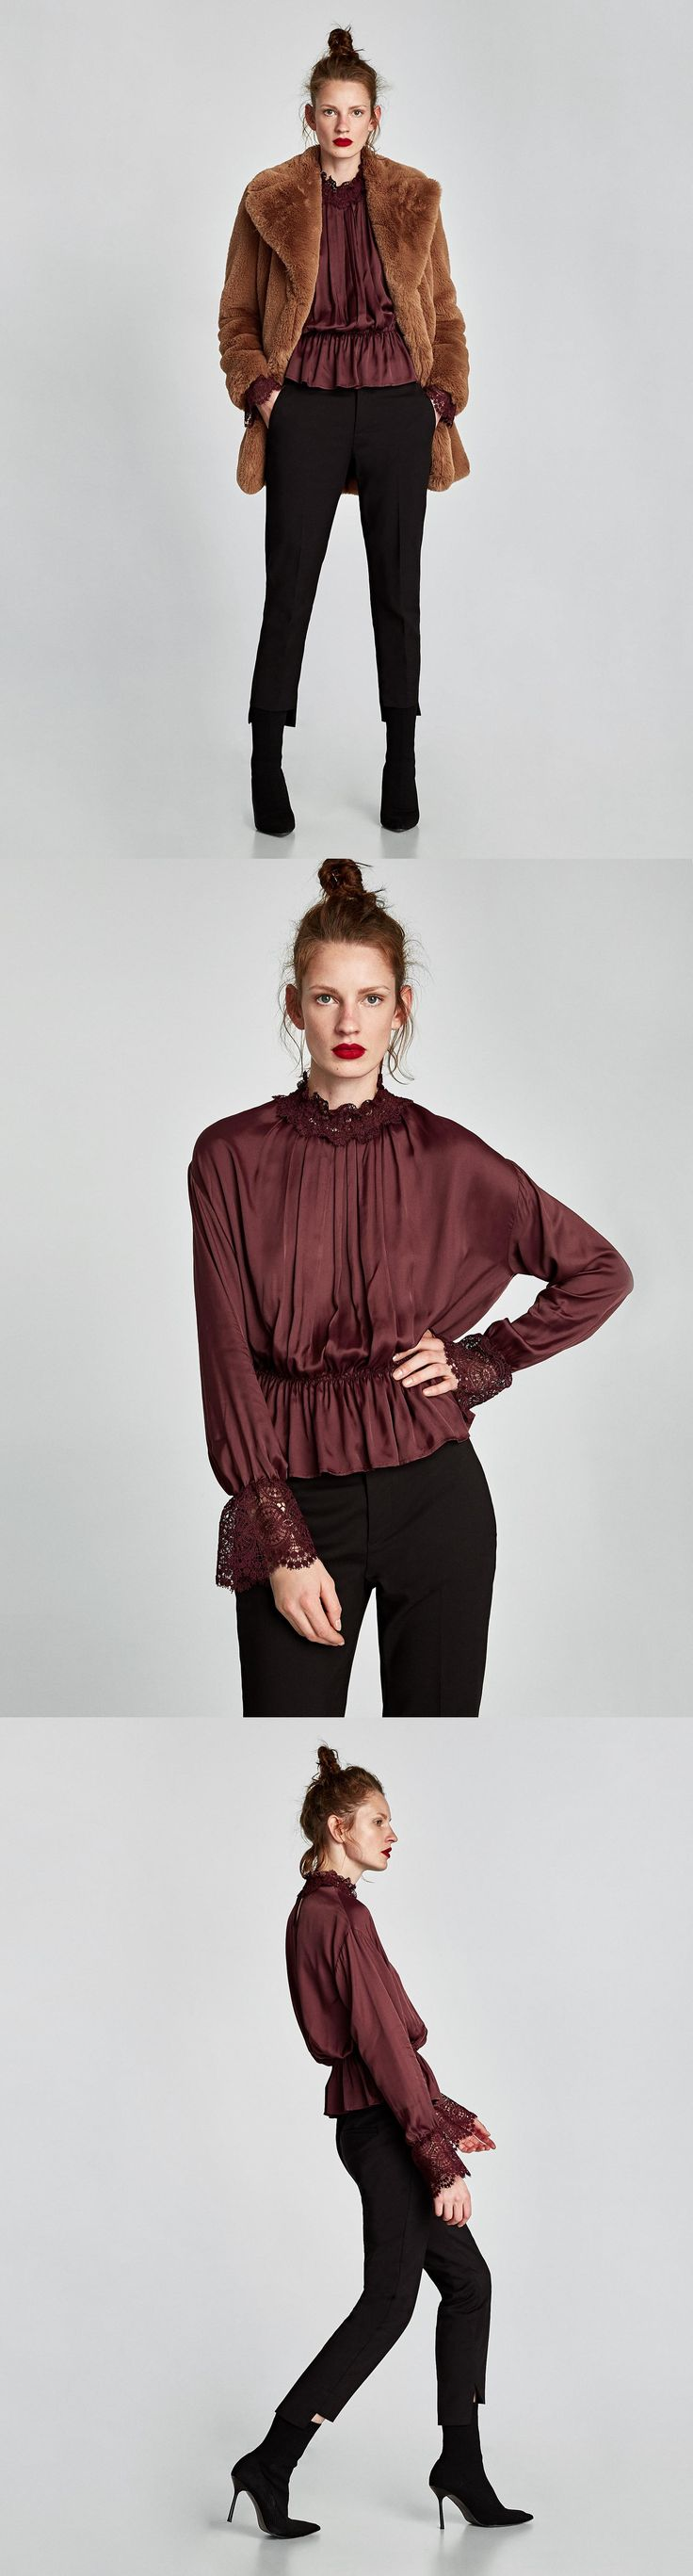 Blouse With Lace Collar // clojure.lang.LazySeq@f09507a8 // Zara // Short flowing blouse with a high lace collar and long sleeves with matching lace cuffs. Features a pleated detail on the front, an elastic waistband and a buttoned opening in the back. HEIGHT OF MODEL: 178 cm. / 5′ 10″